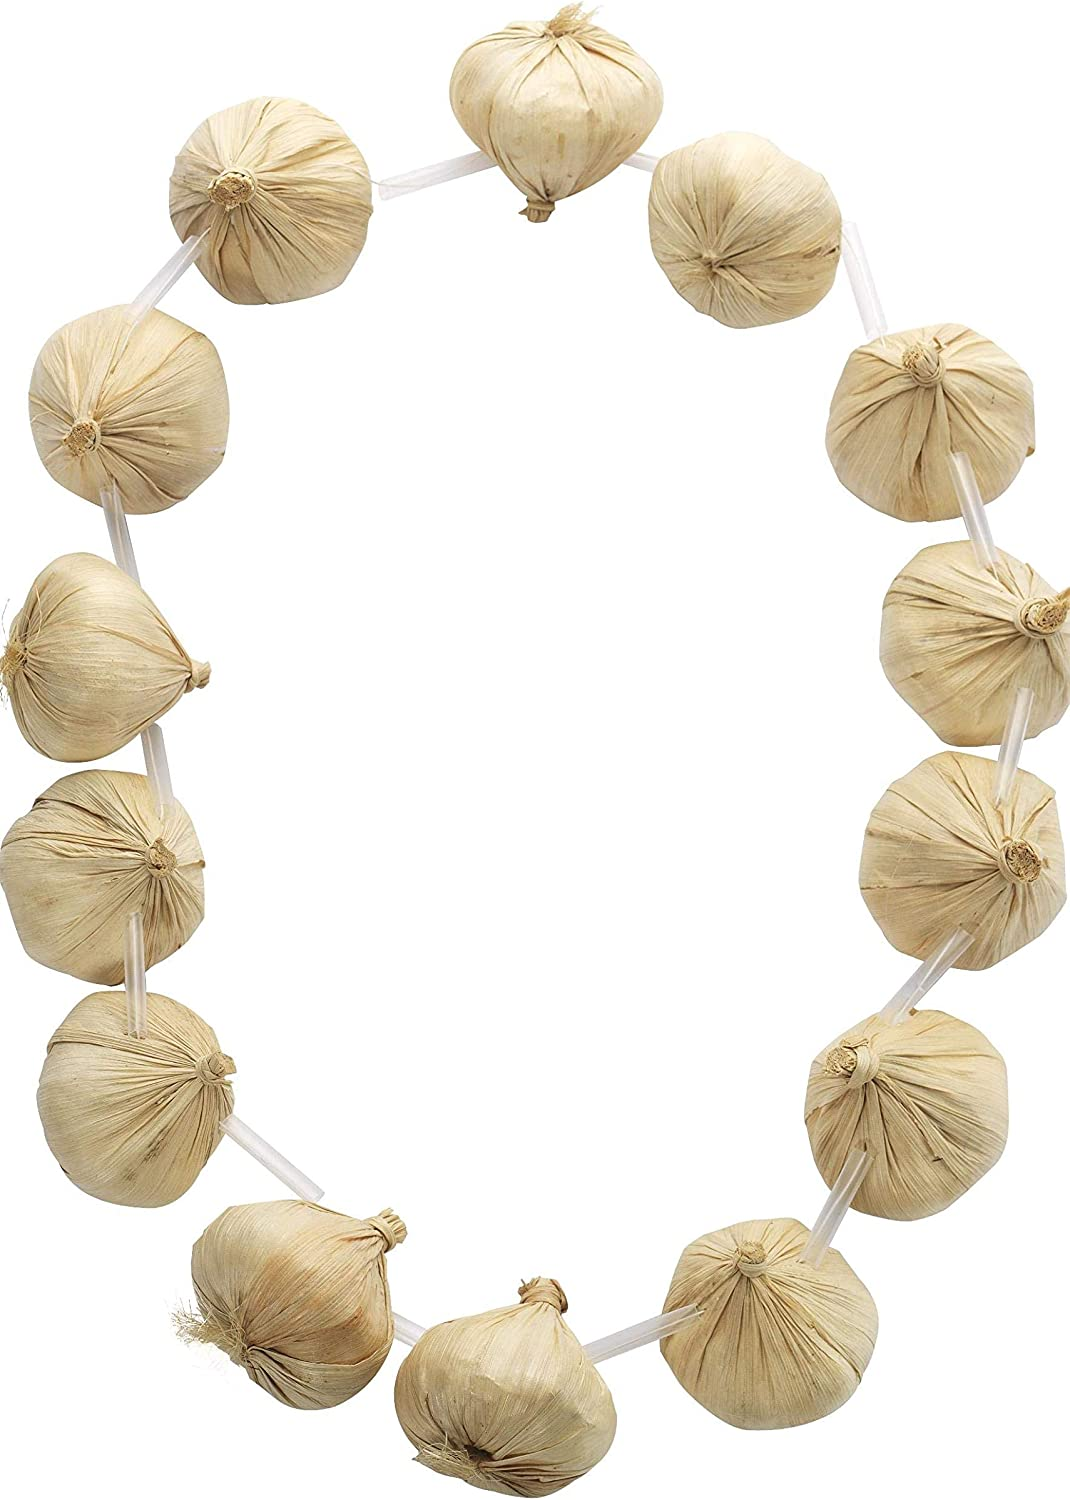 2x GARLAND RED ONION FRENCH STRINGS NECKLACE FRENCH UNISEX FANCY DRESS ACCESSORY